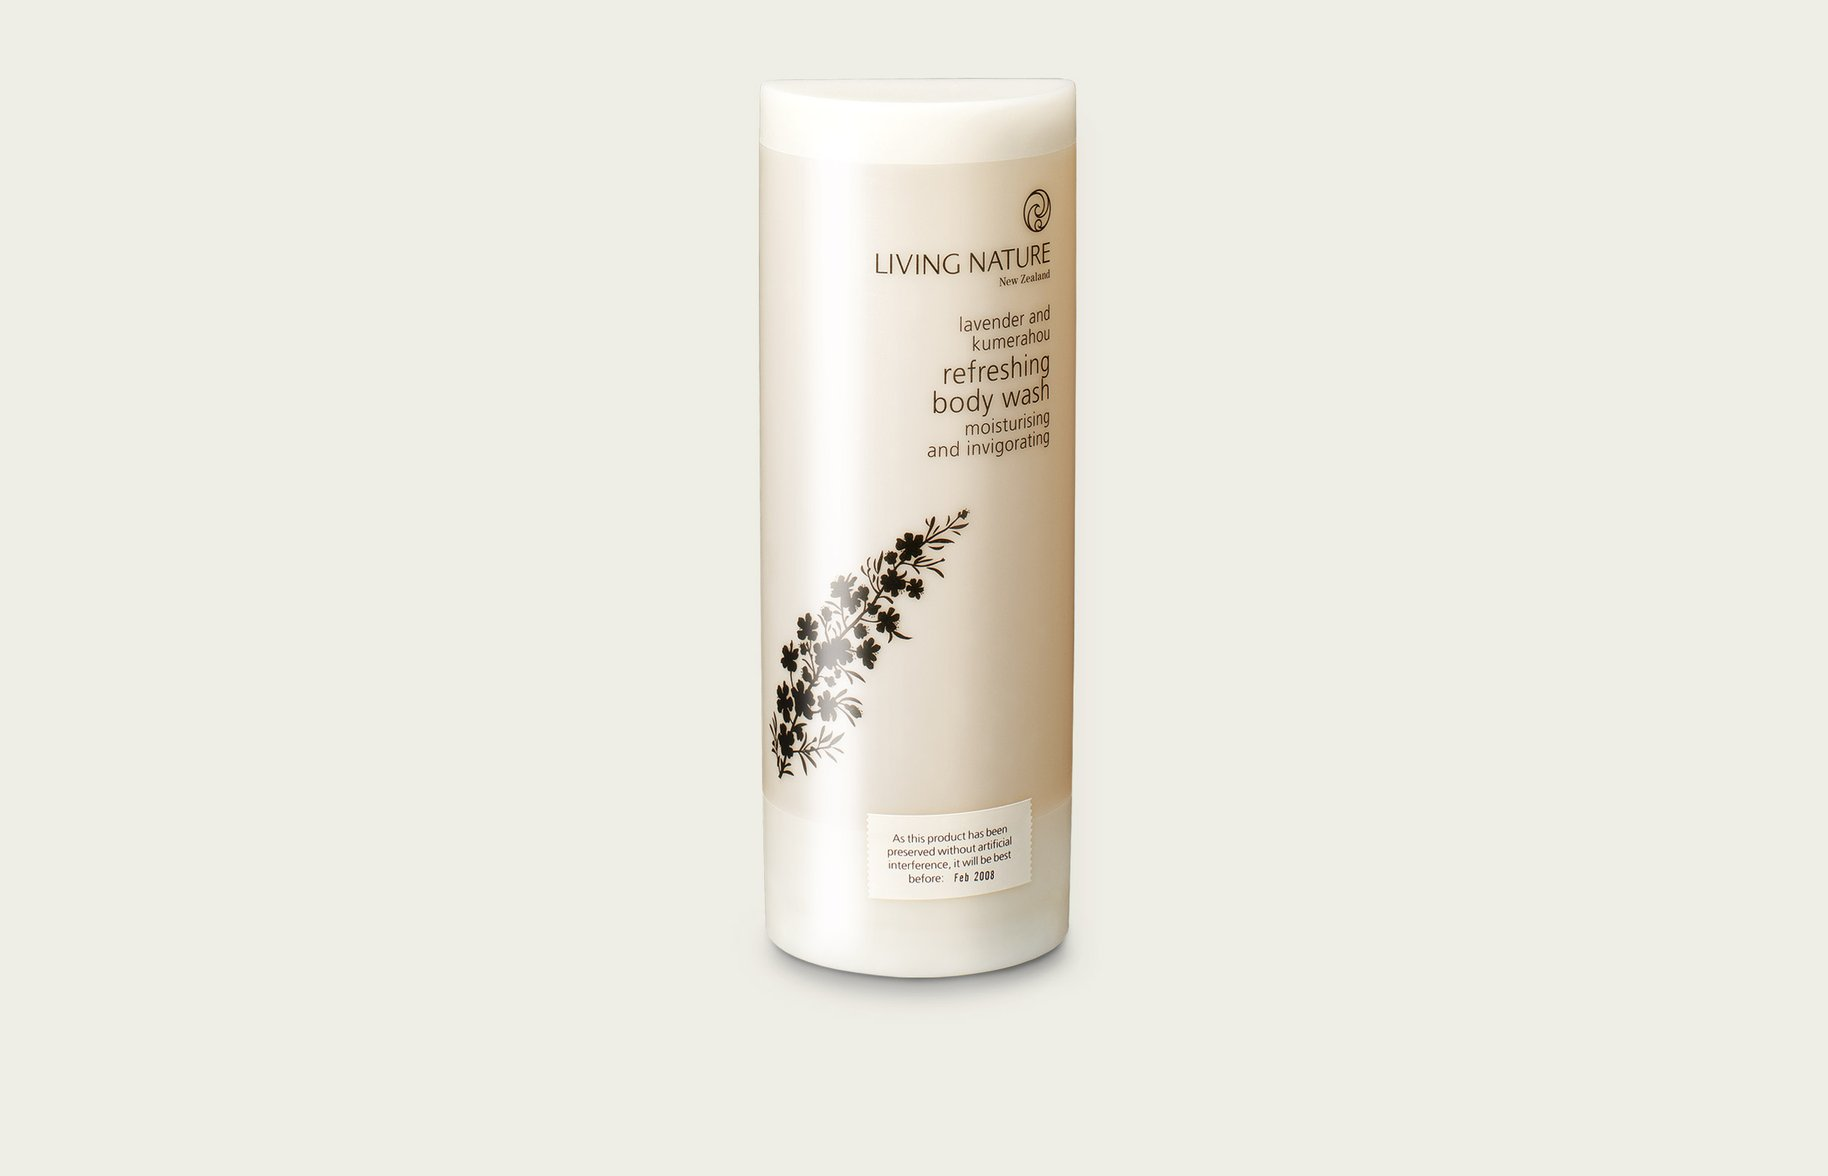 Living Nature refreshing body wash packaging